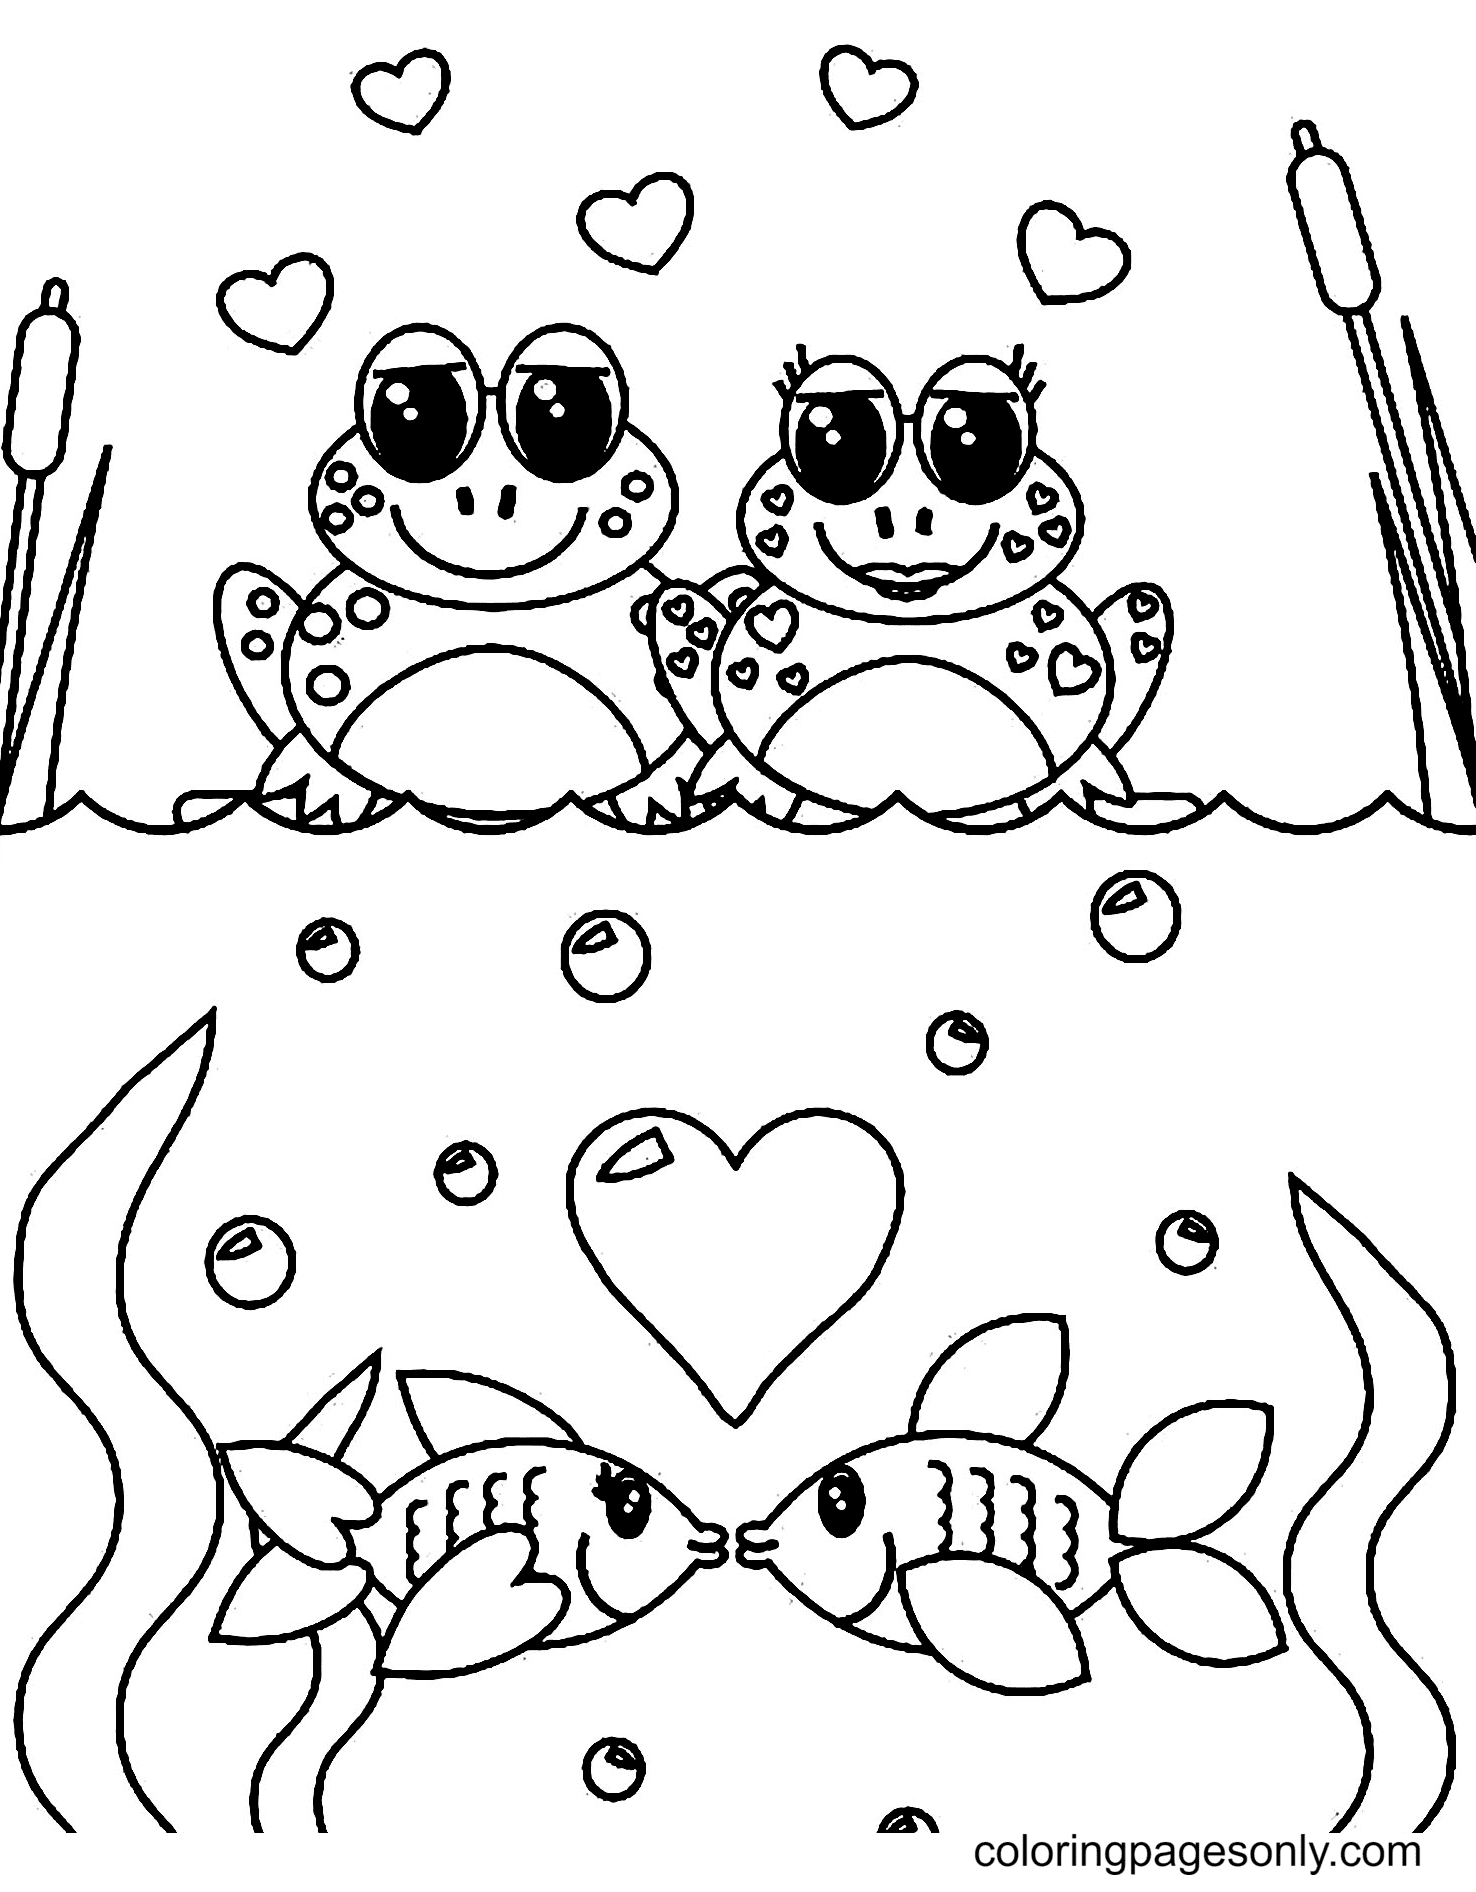 Pair of Frogs and Pair of Fish Coloring Page